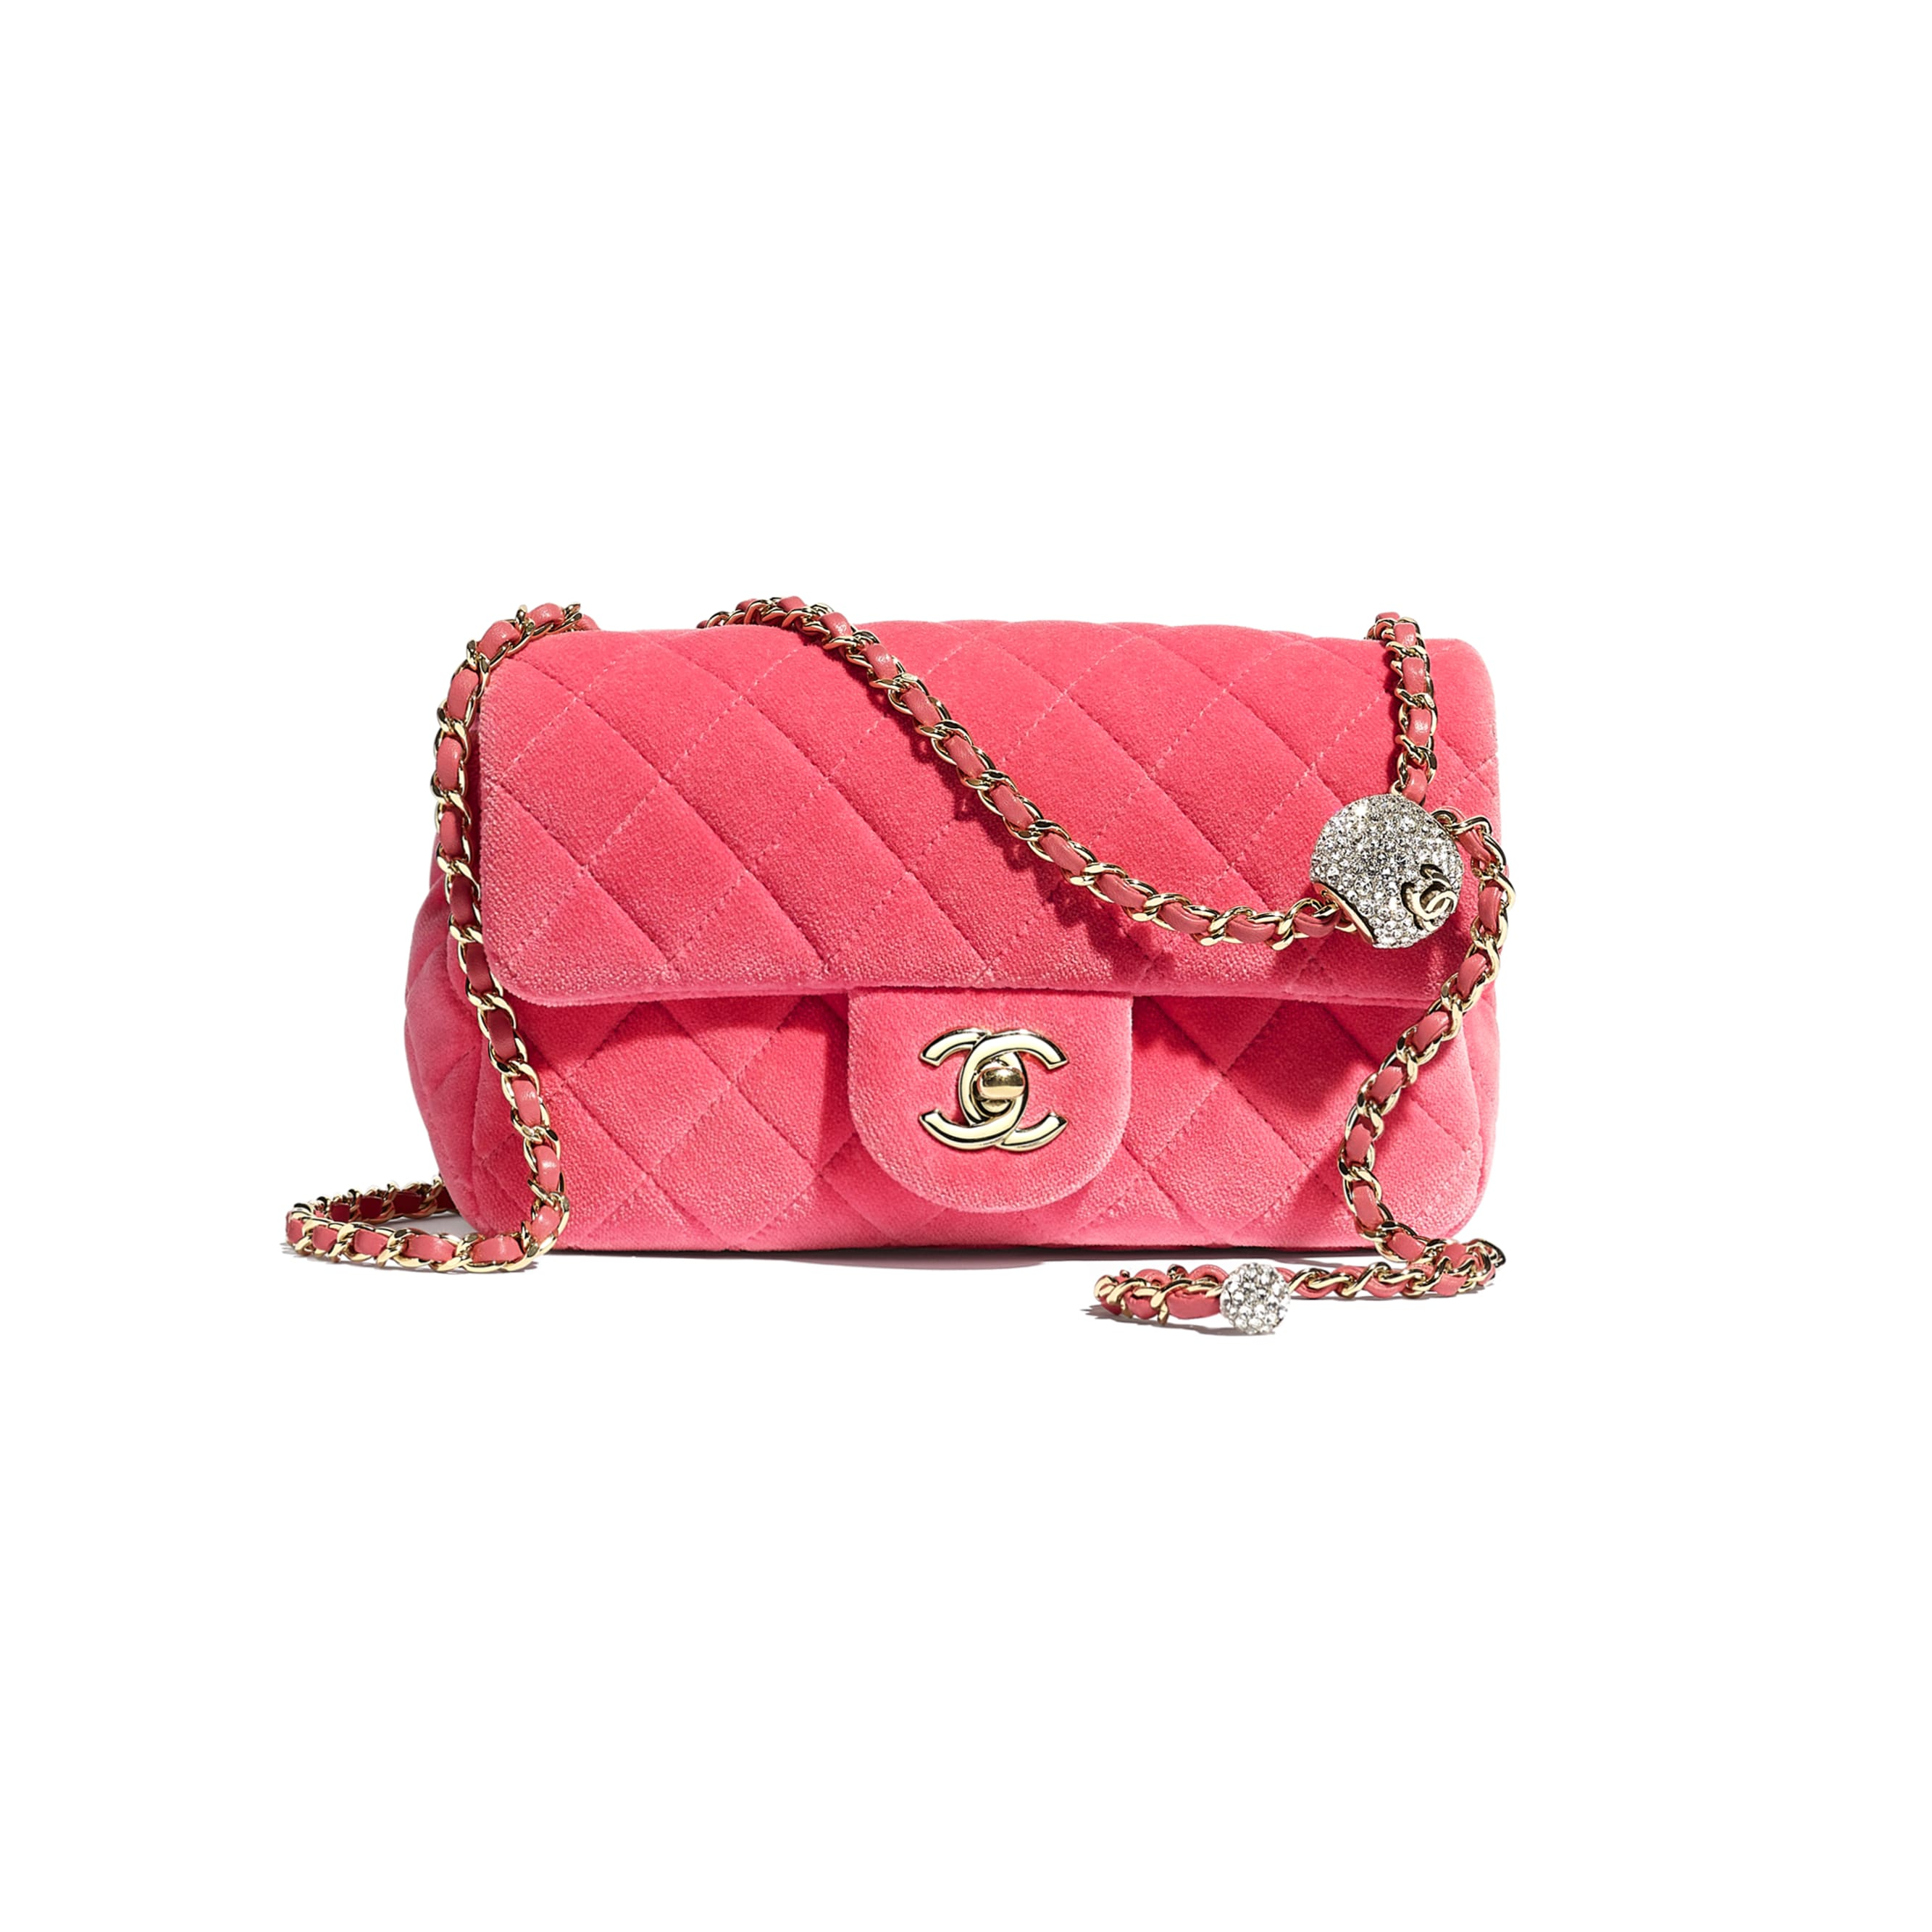 Flap Bag - Coral - Velvet, Diamanté & Silver-Tone Metal - CHANEL - Default view - see standard sized version